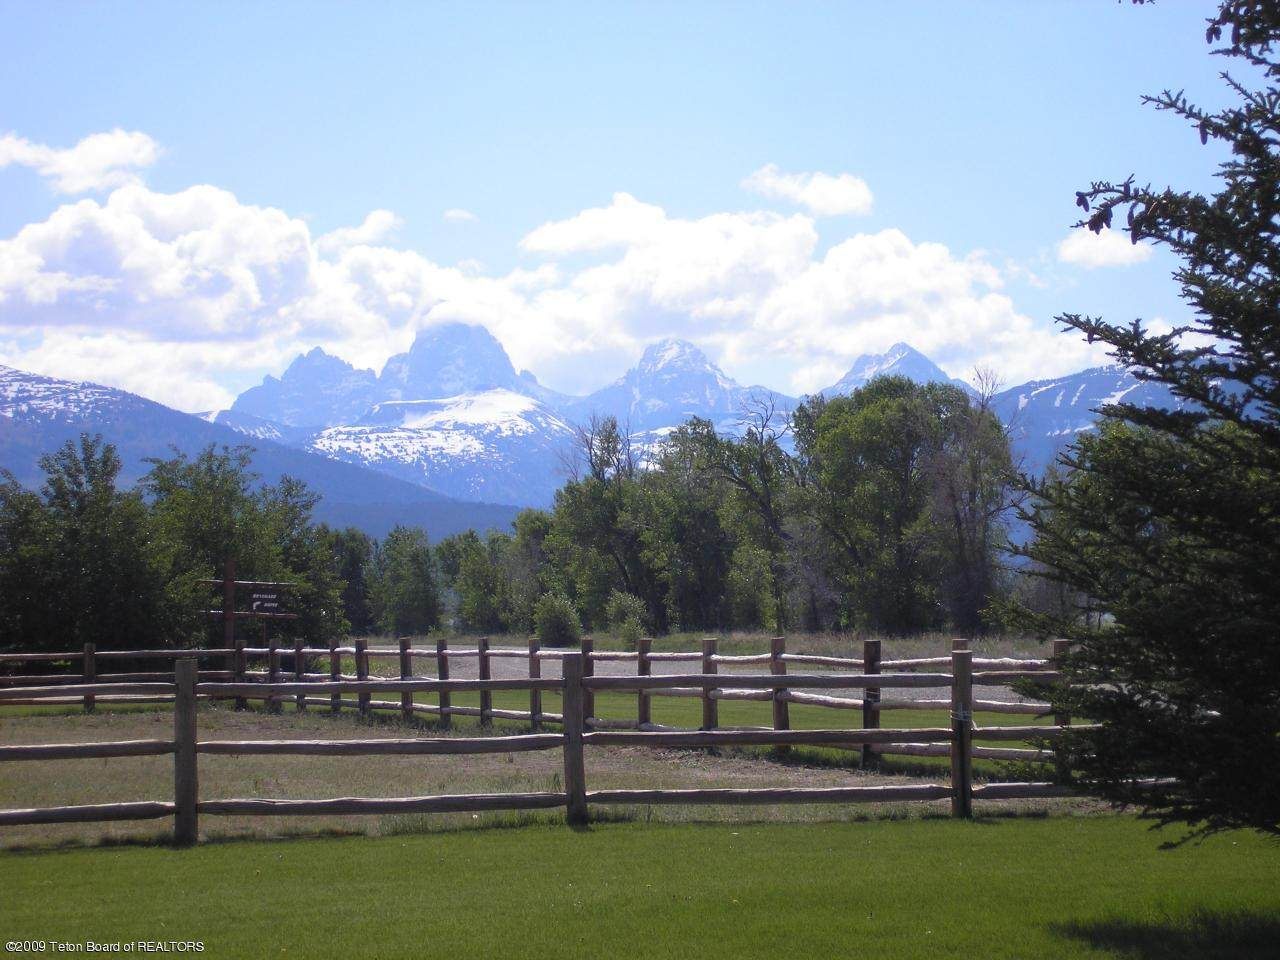 https://bt-photos.global.ssl.fastly.net/teton/orig_boomver_1_20-1102-2.jpg